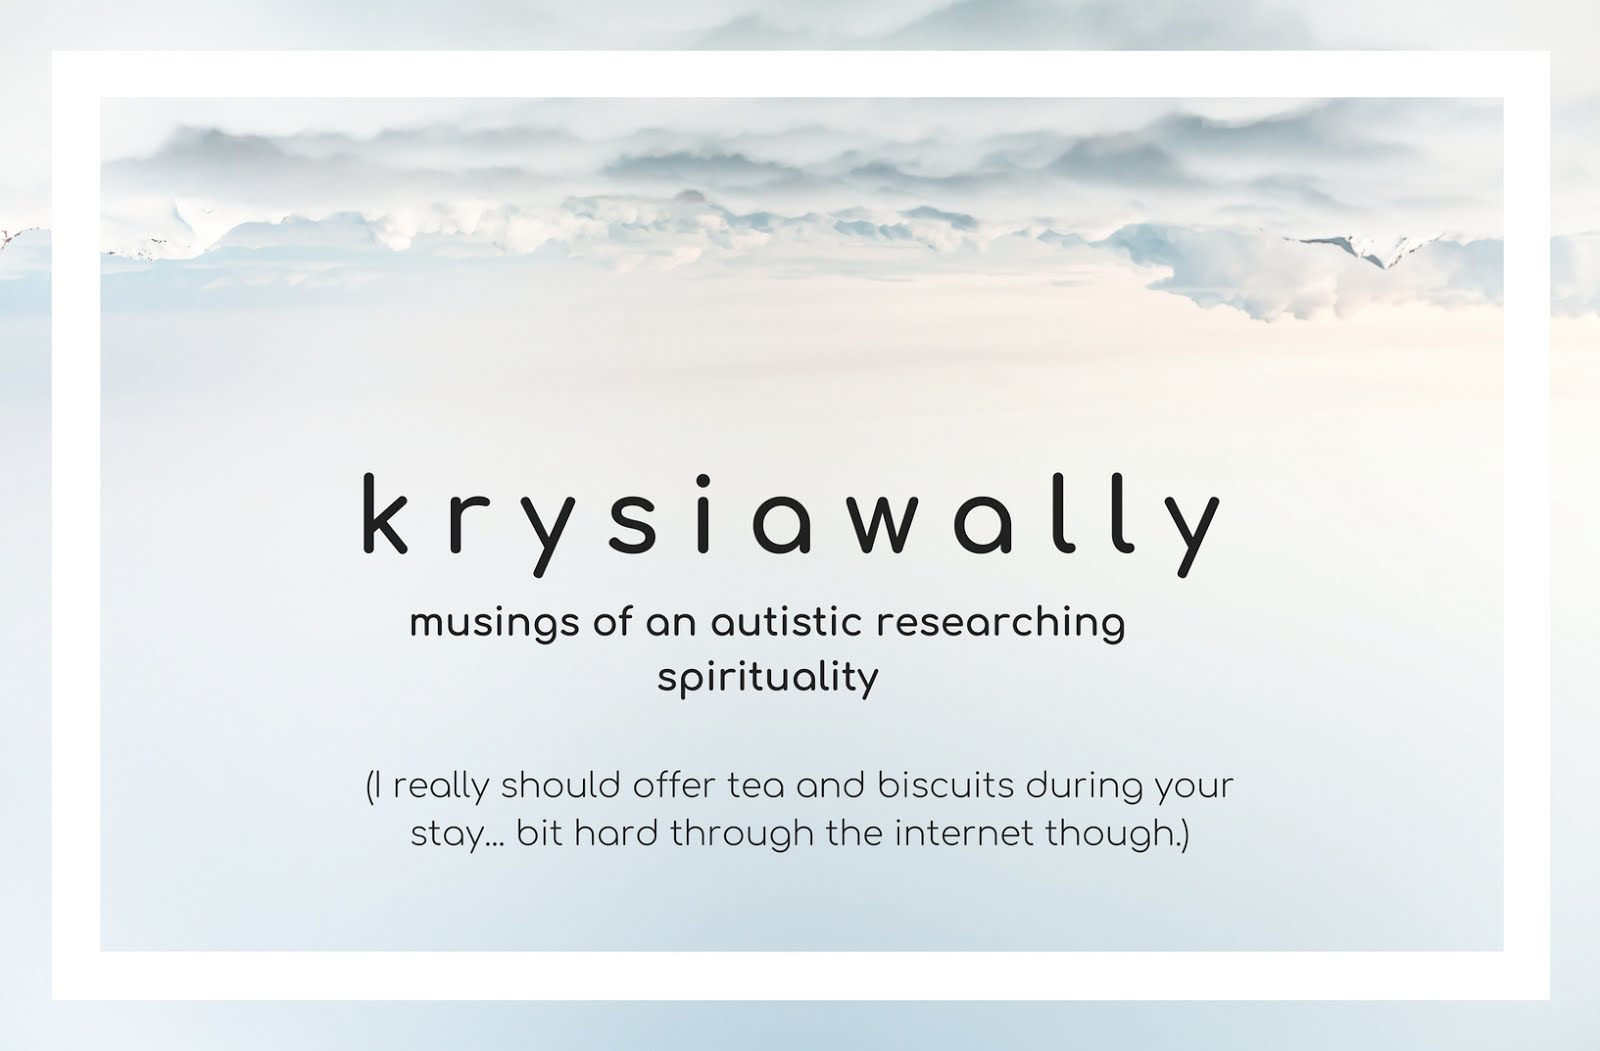 krysiawally: musings of an autistic researching spirituality